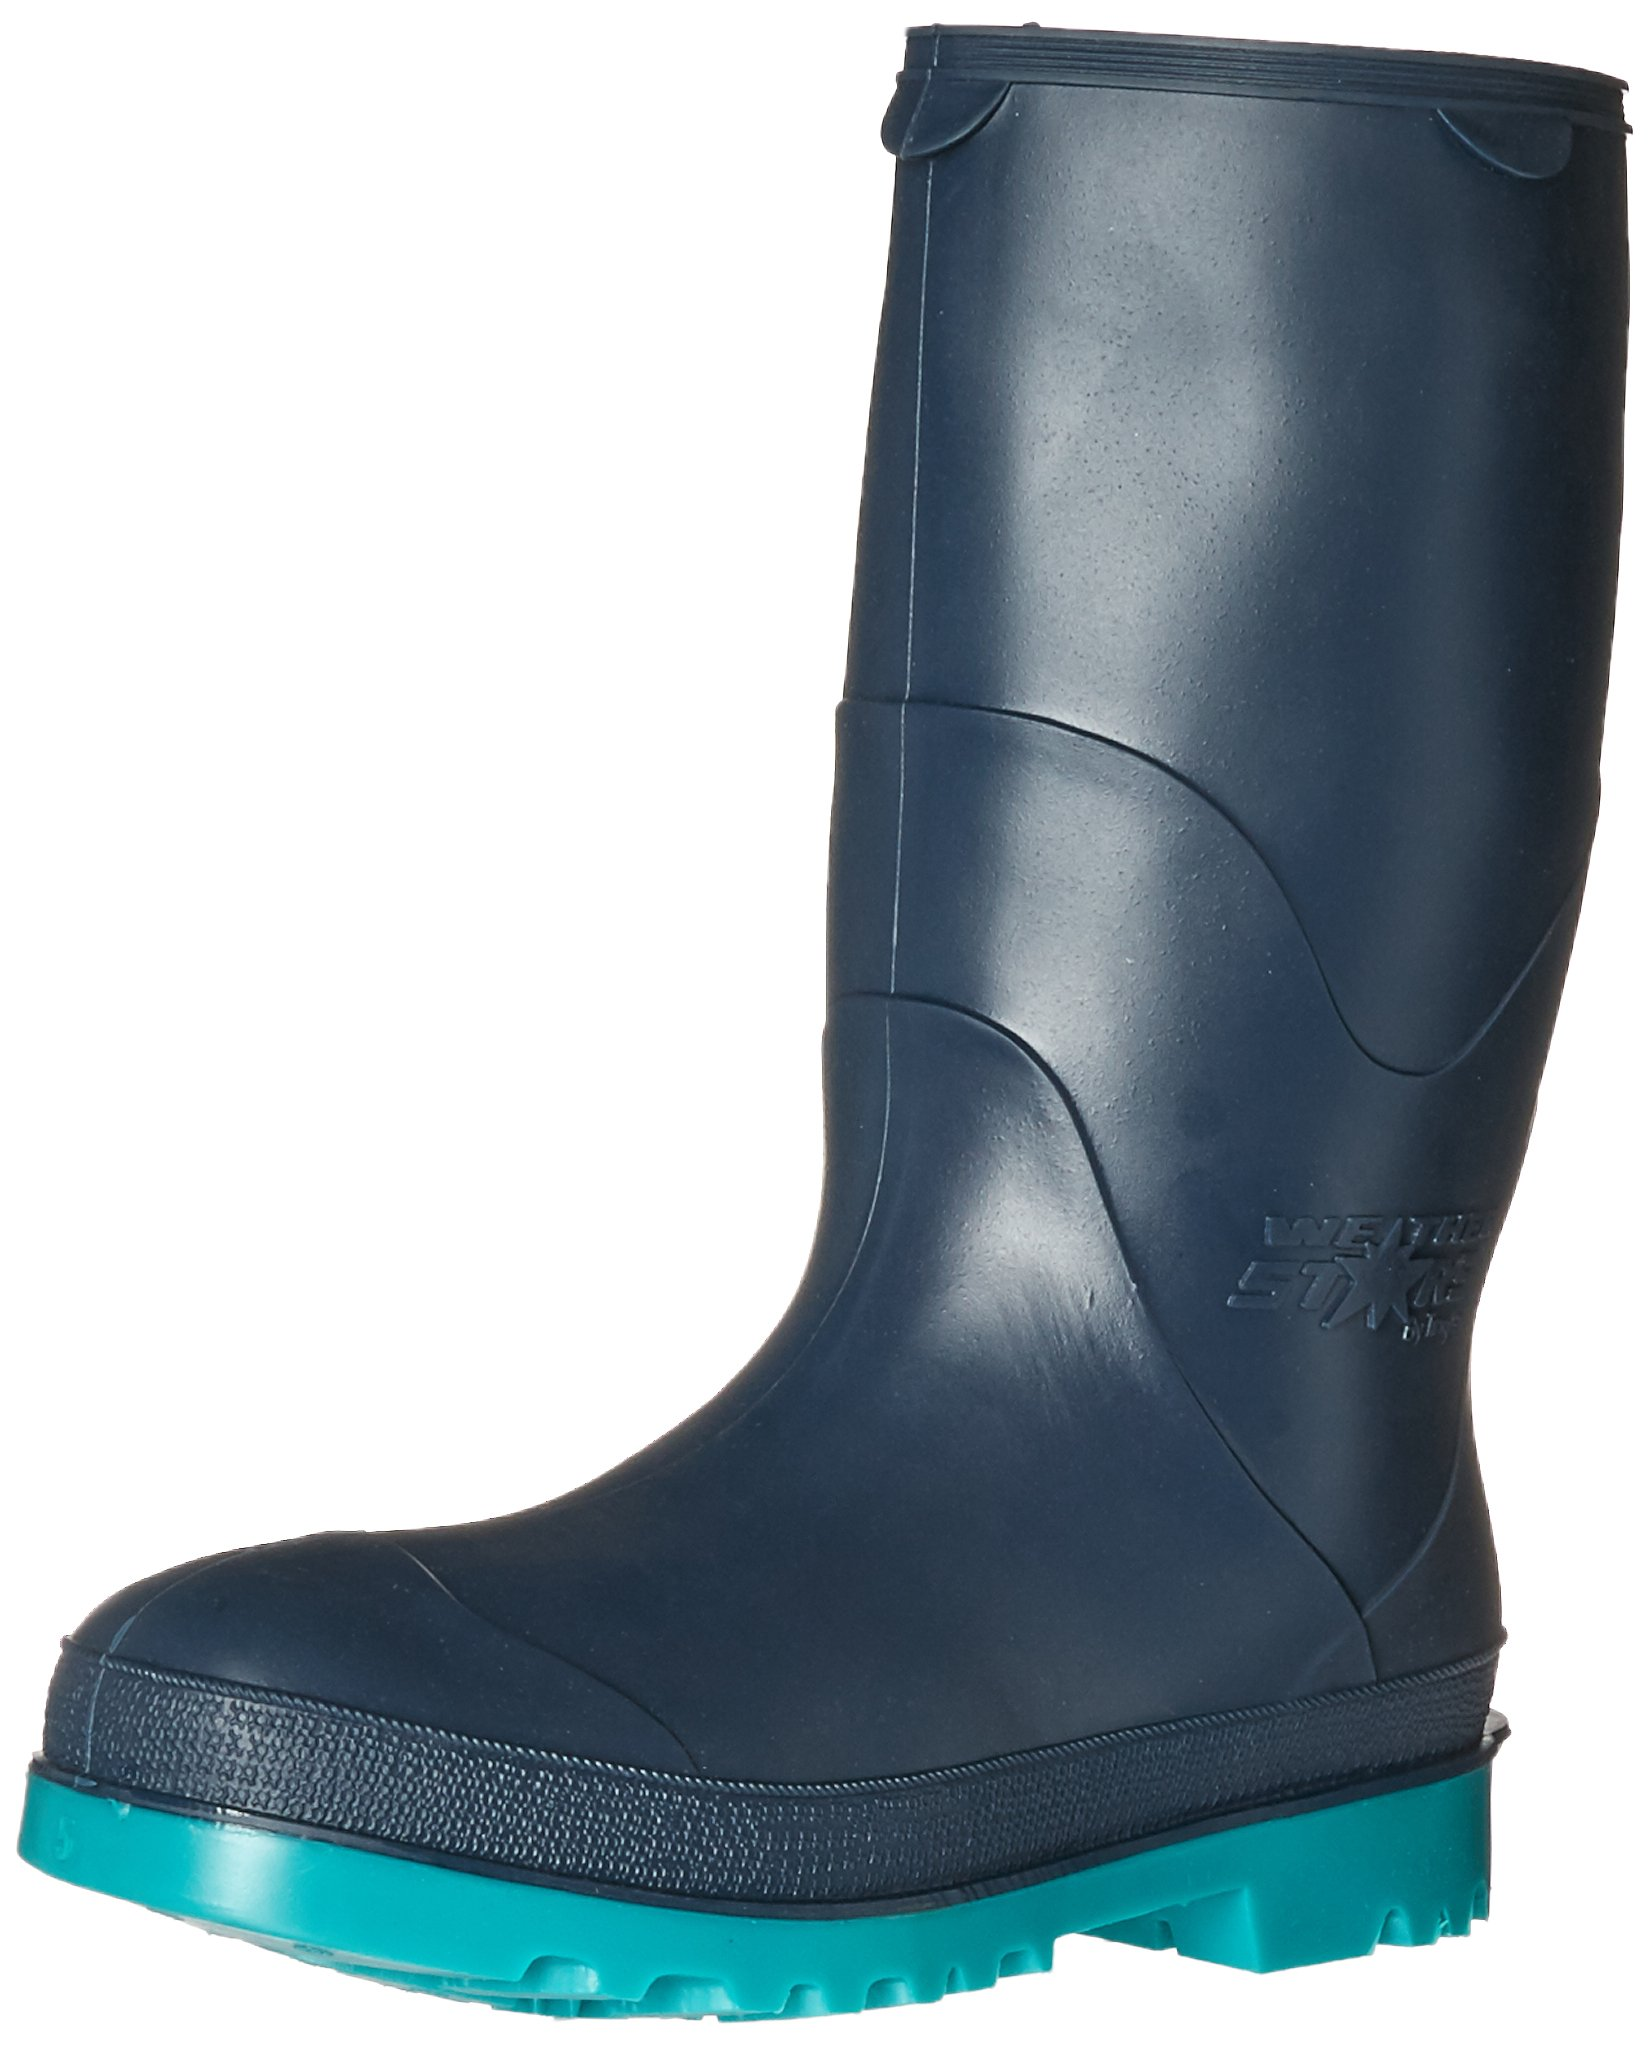 STORMTRACKS 11768.05 Youths' Boot, Size 05, Blue/Green